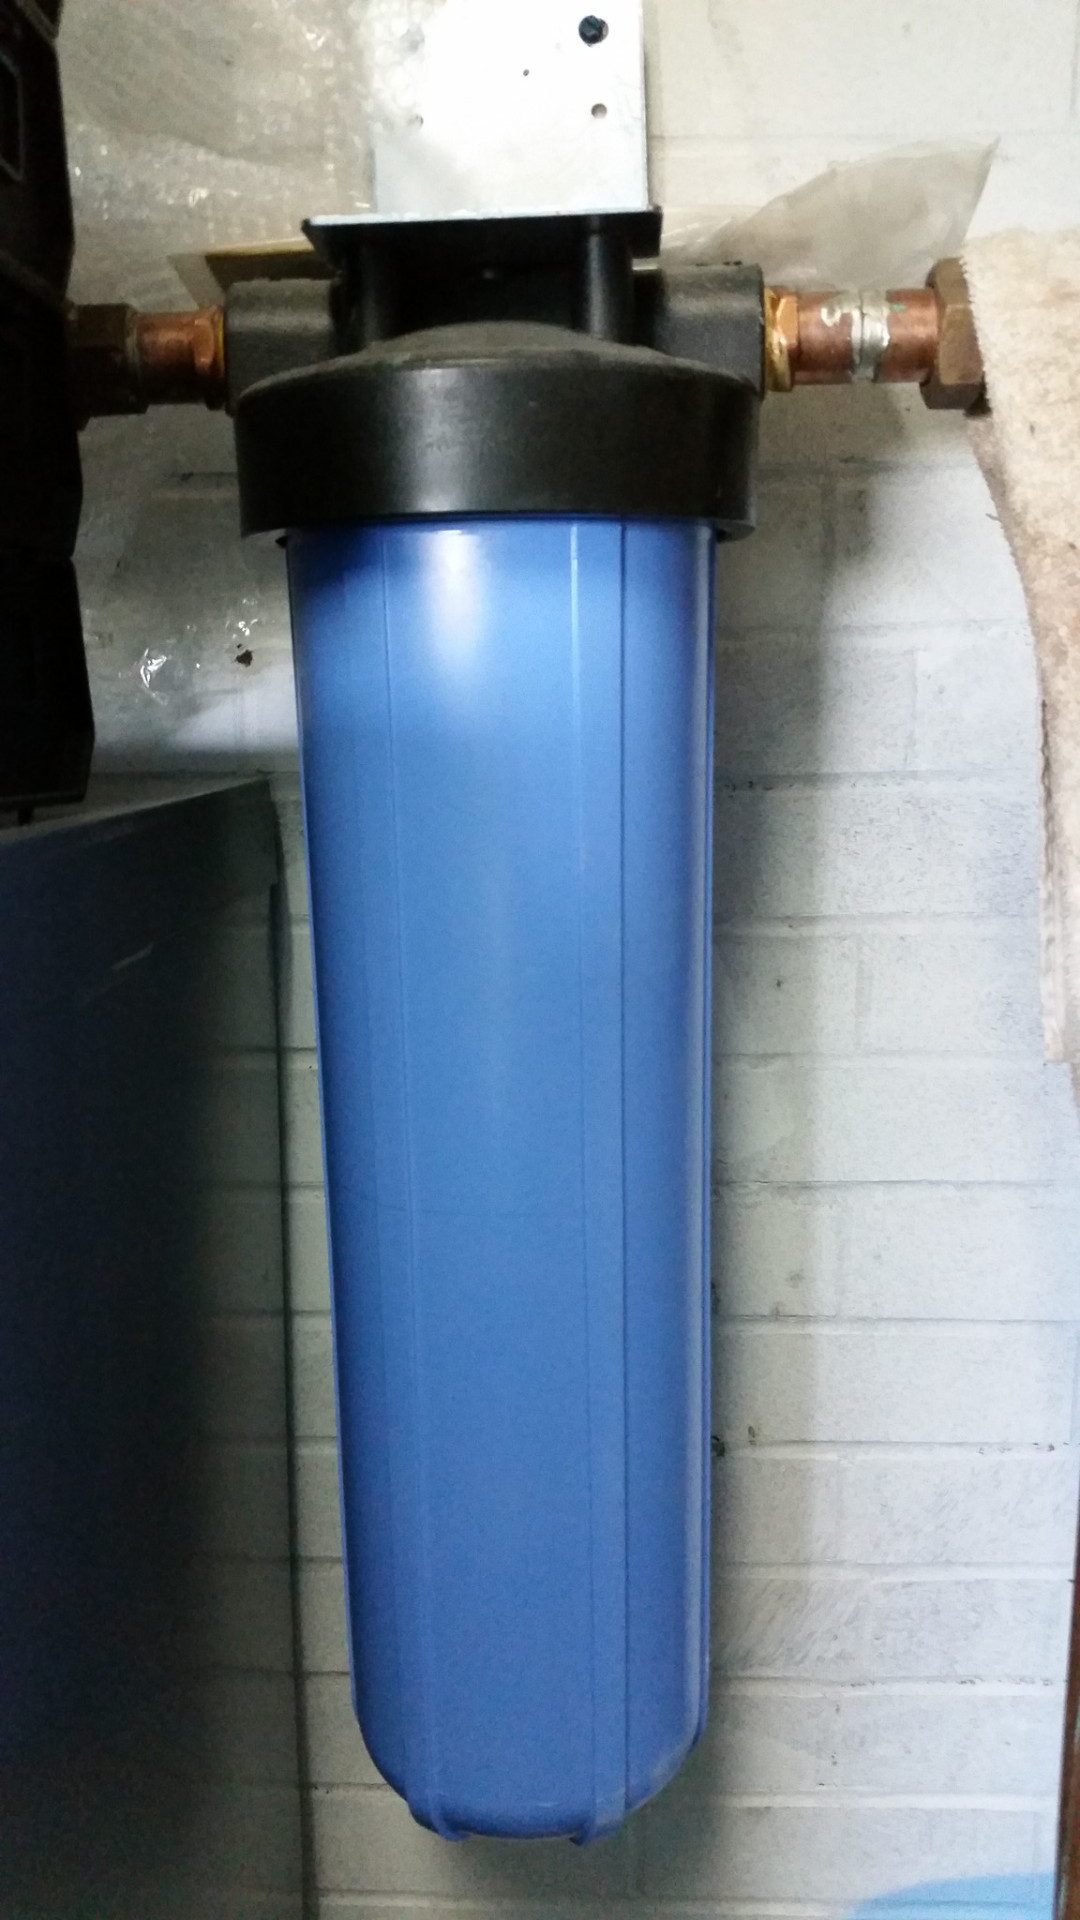 Deionization Carbon Water Filters Protect Your Equipment